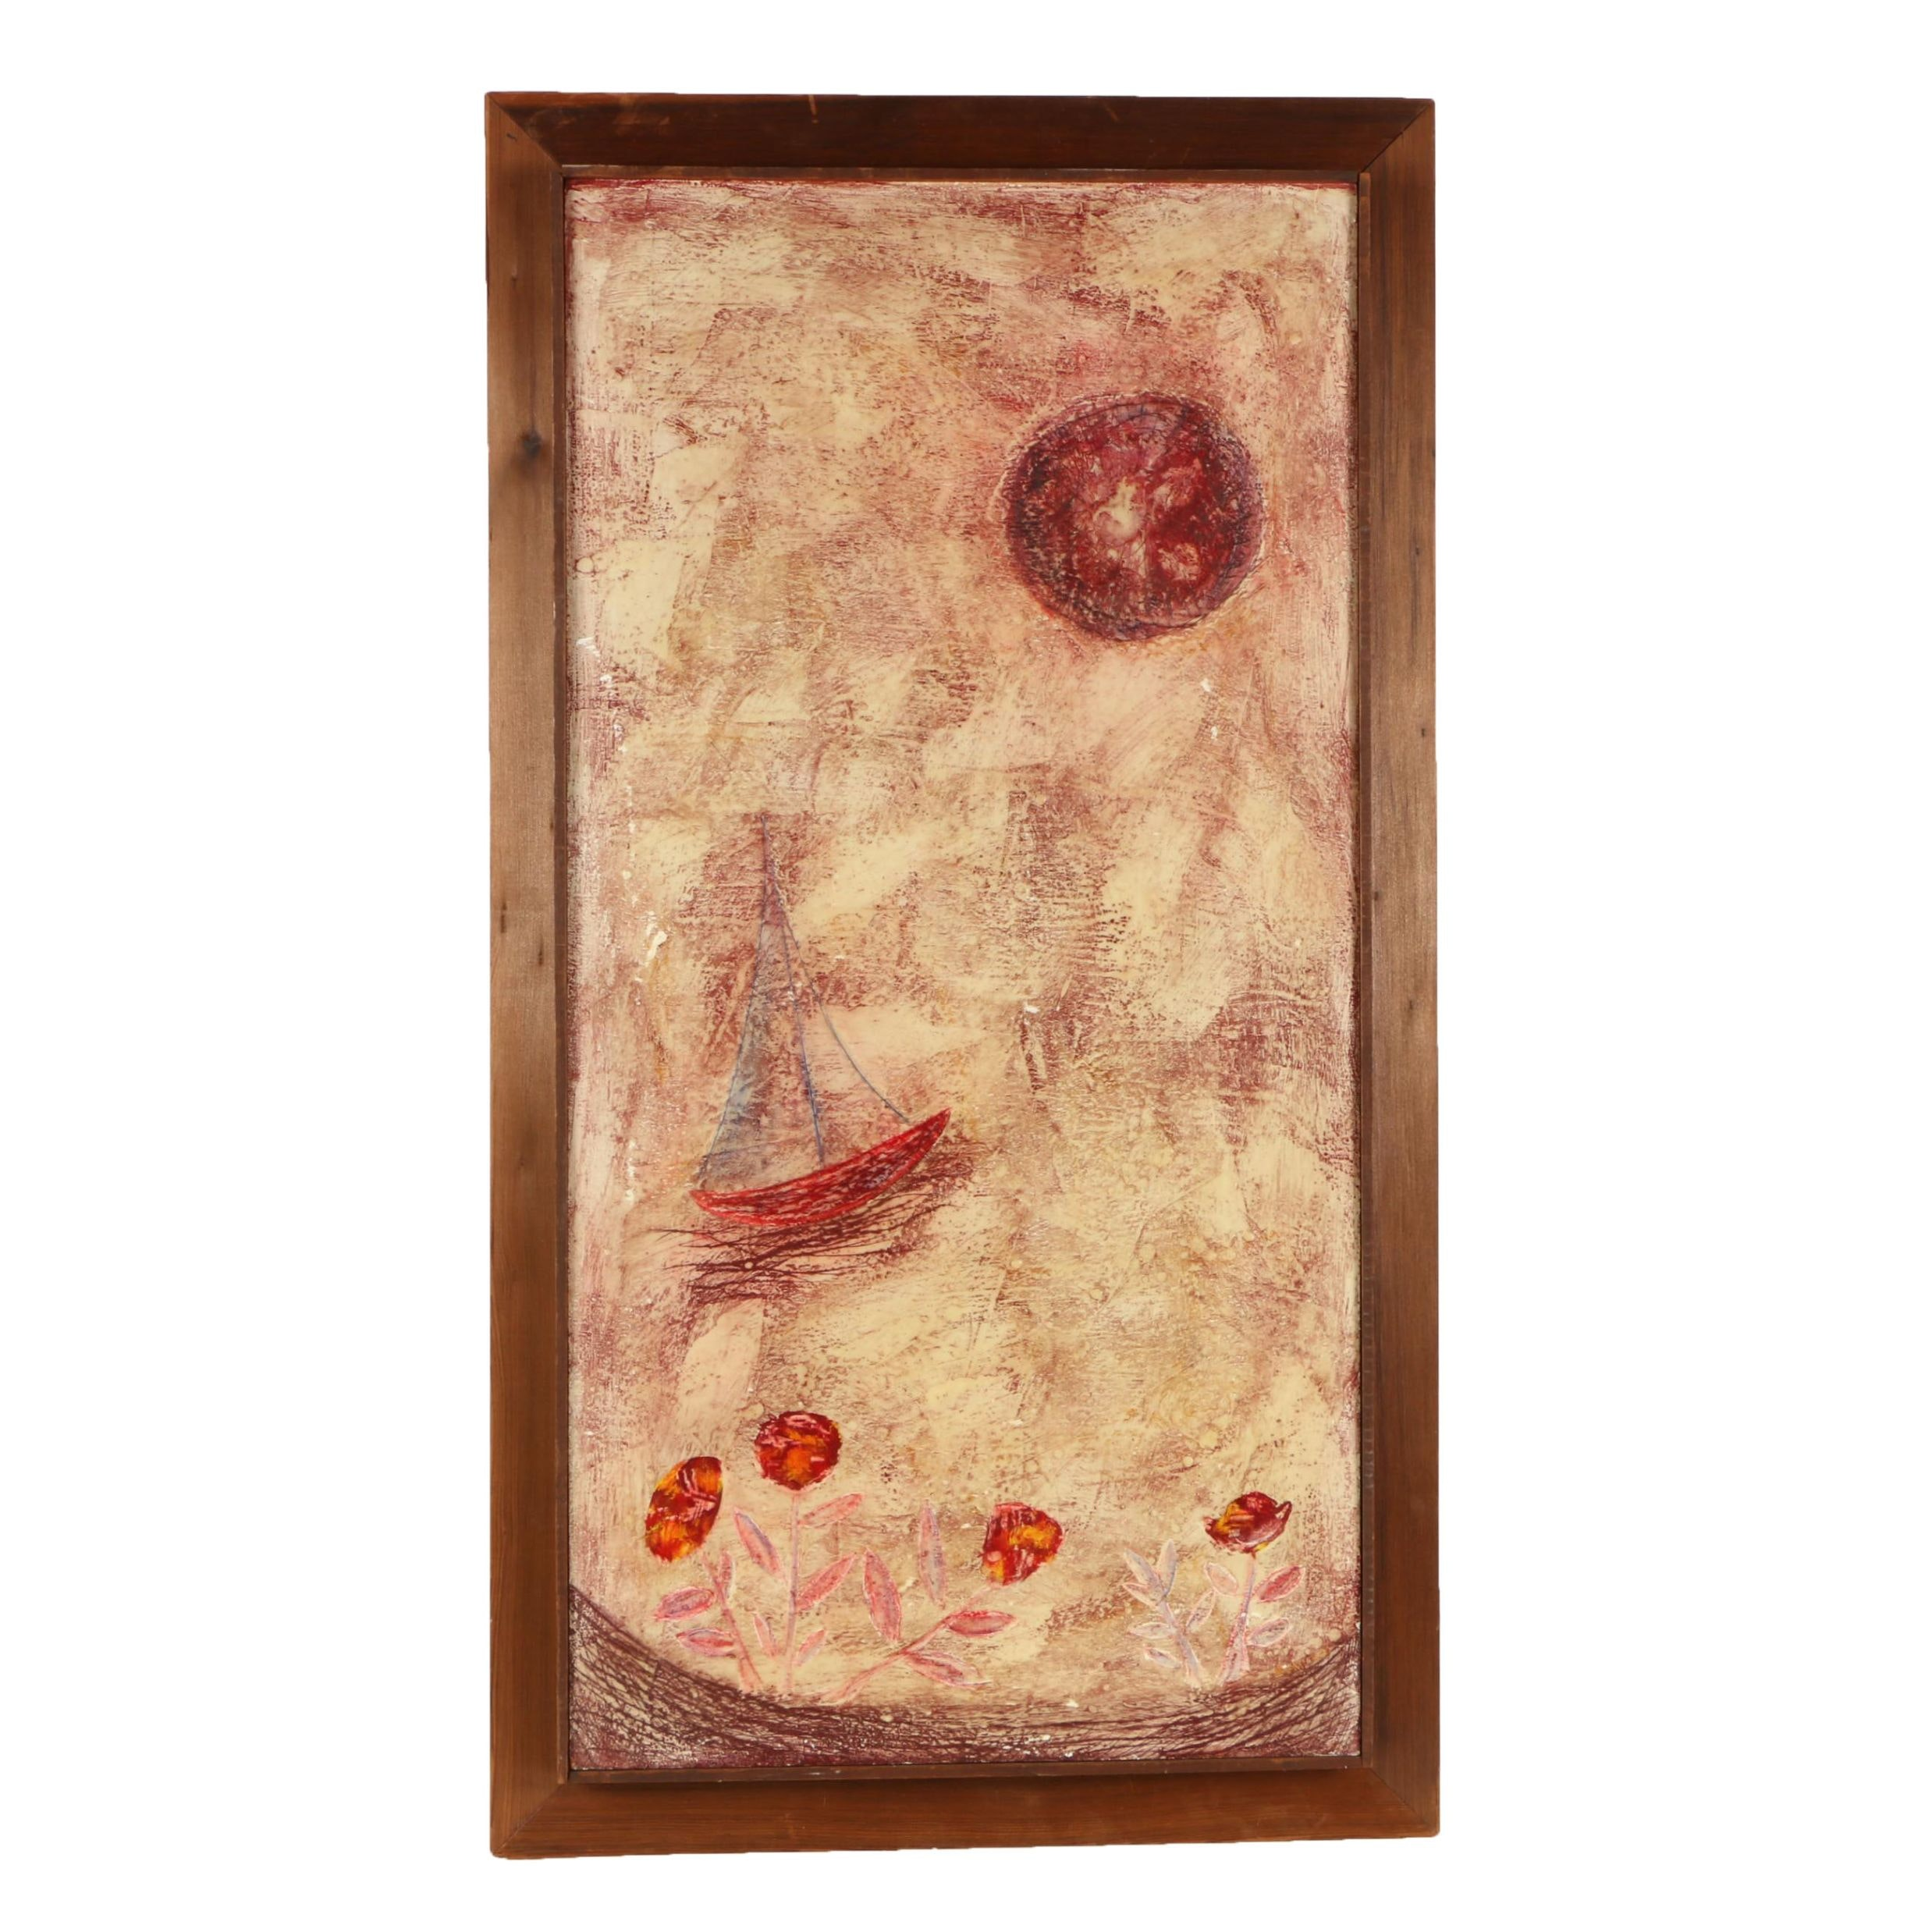 1960 John Hamilton Encaustic Painting on Masonite